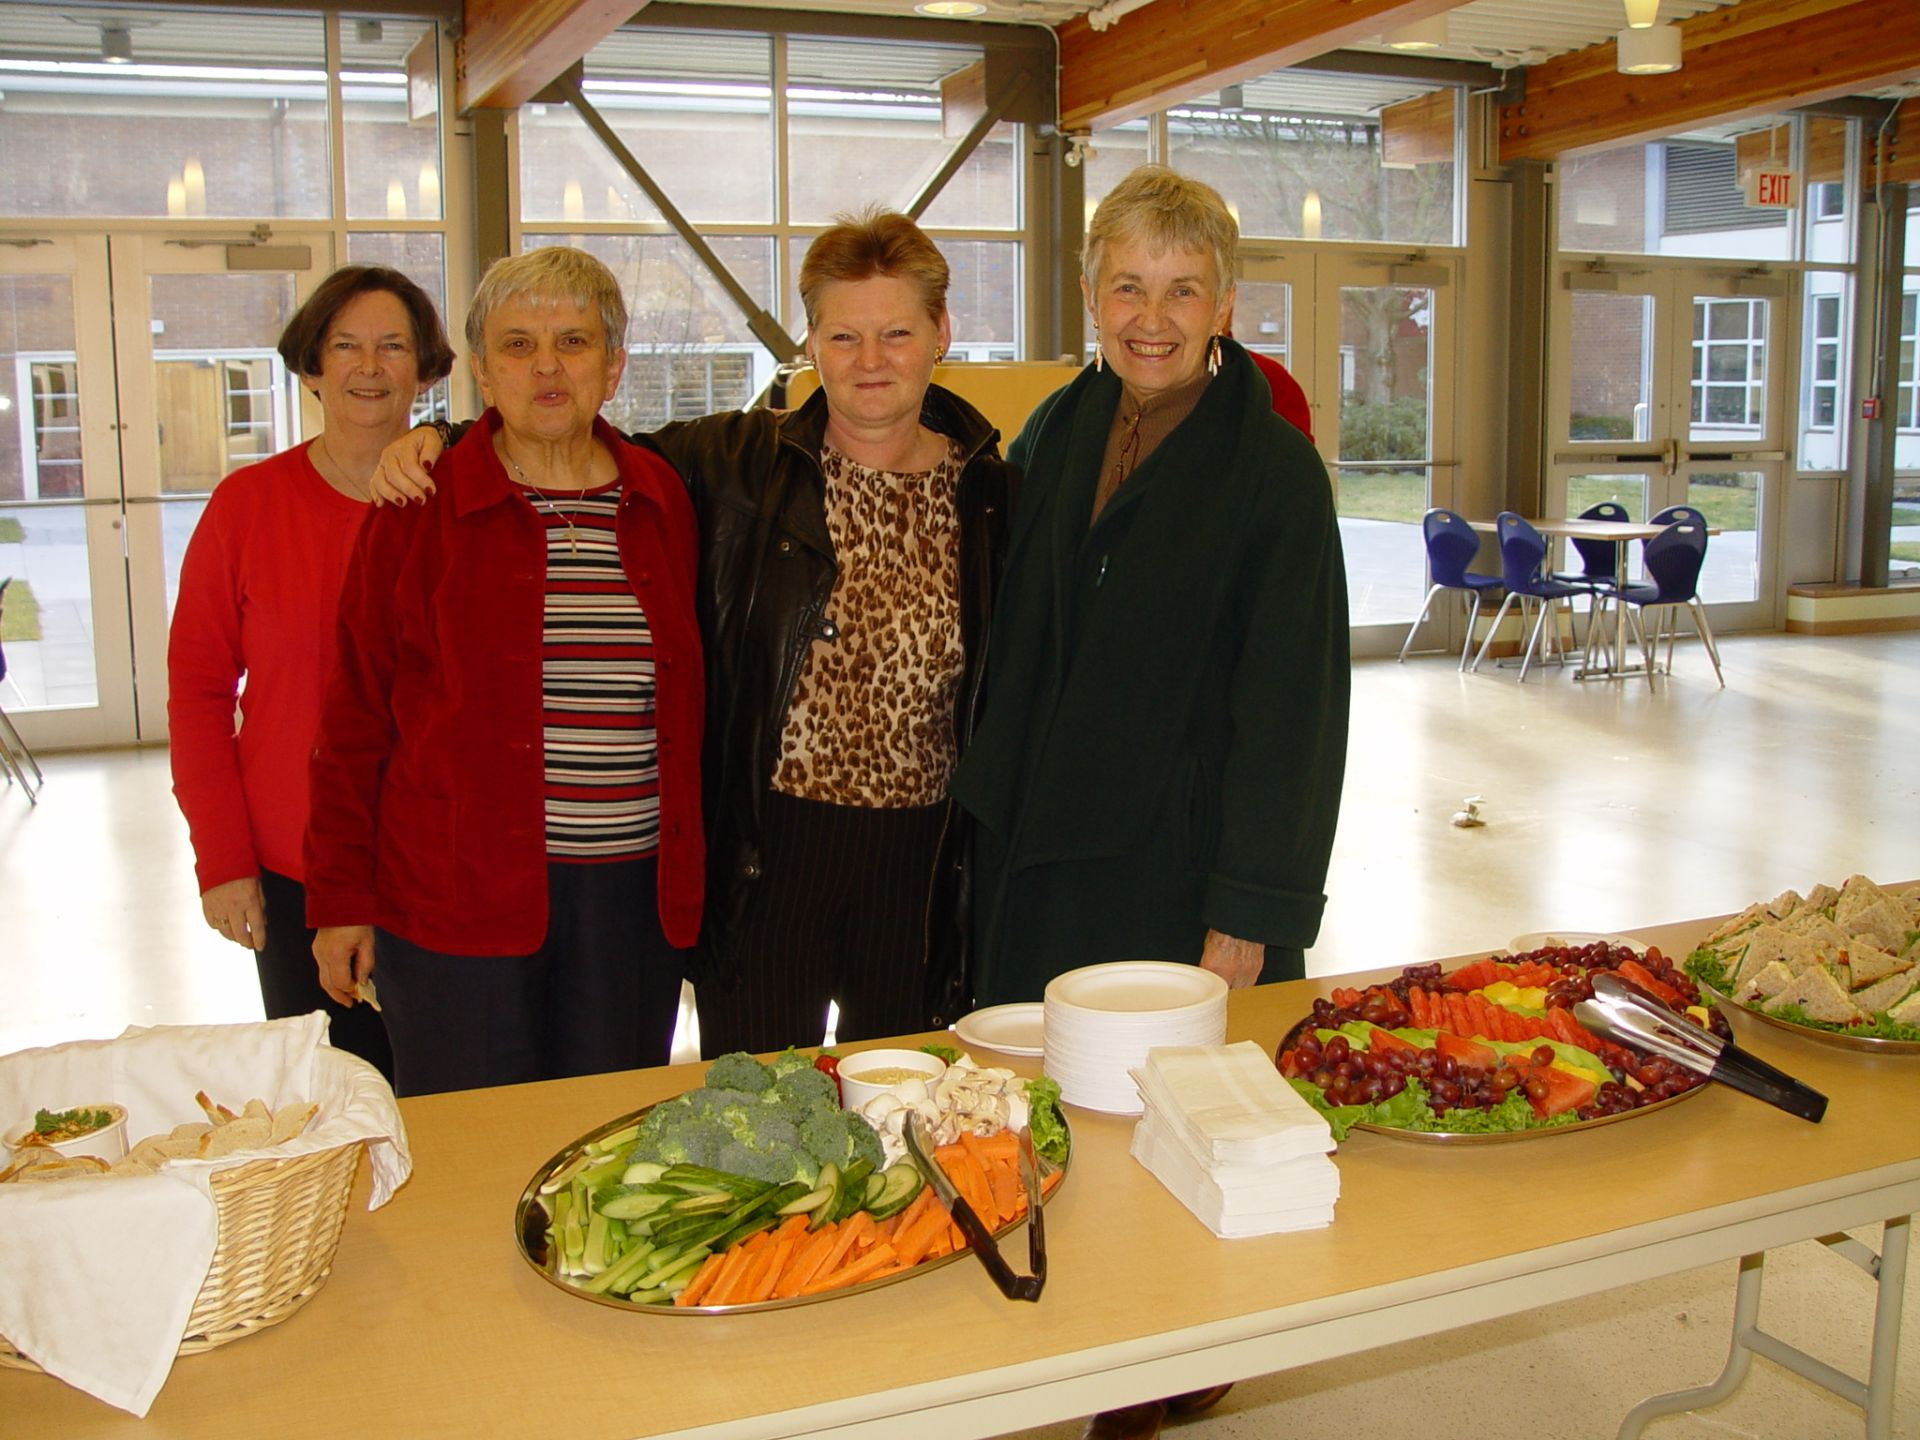 Brenda, Mauvorneen, Sister Fran and Marian at the 2007 Alumnae Home for the Holidays